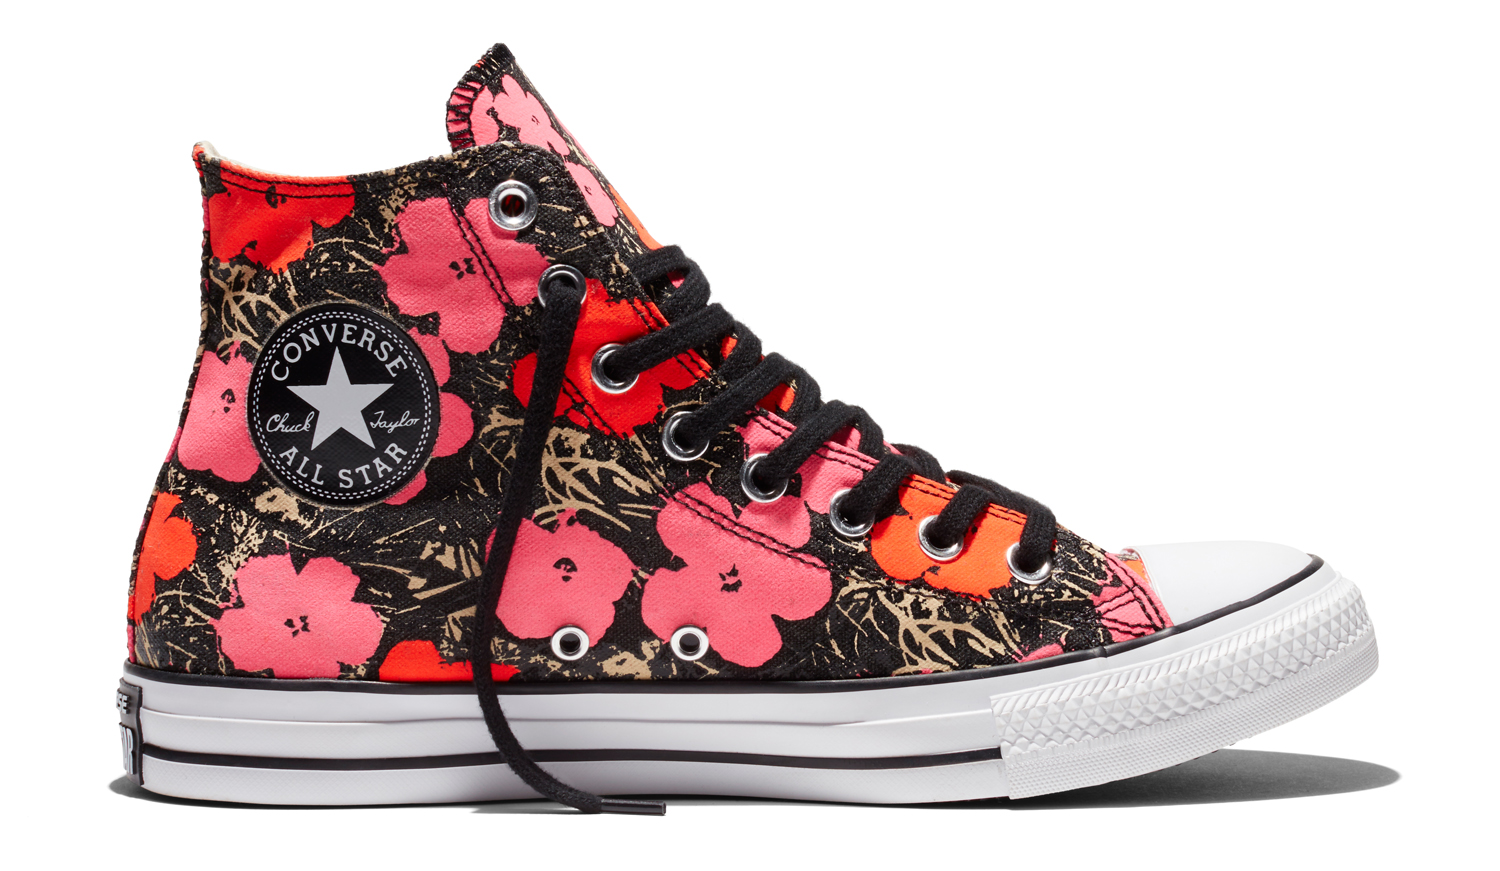 Converse Chuck Taylor Andy Warhol Collection